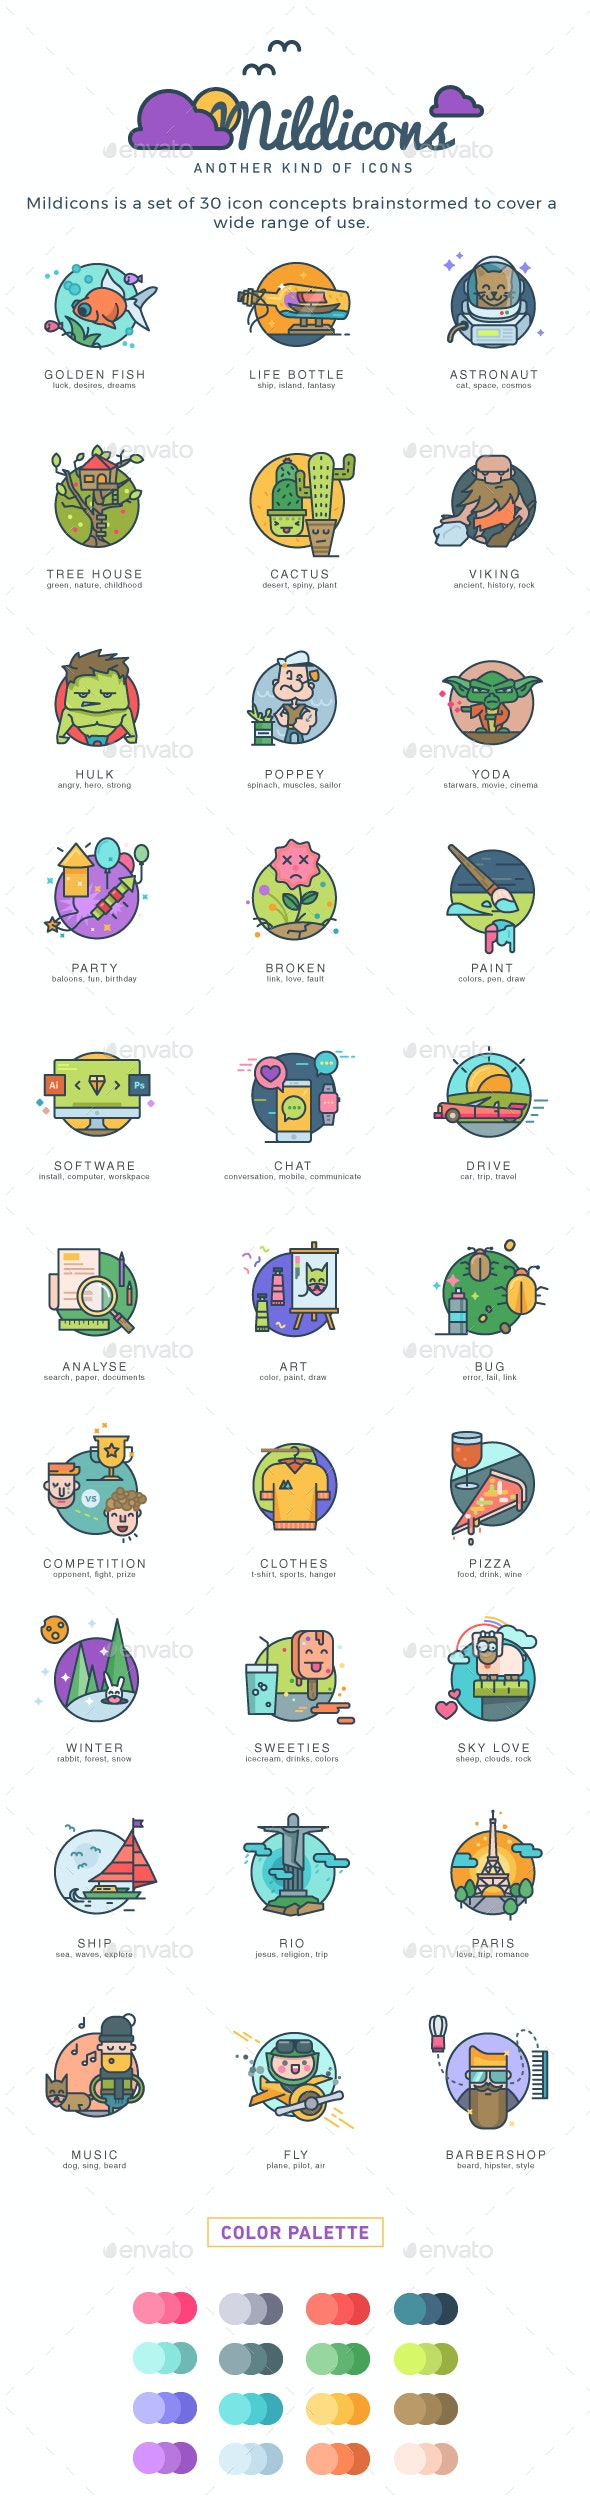 Mildicons - Another kind of icons - Web Icons